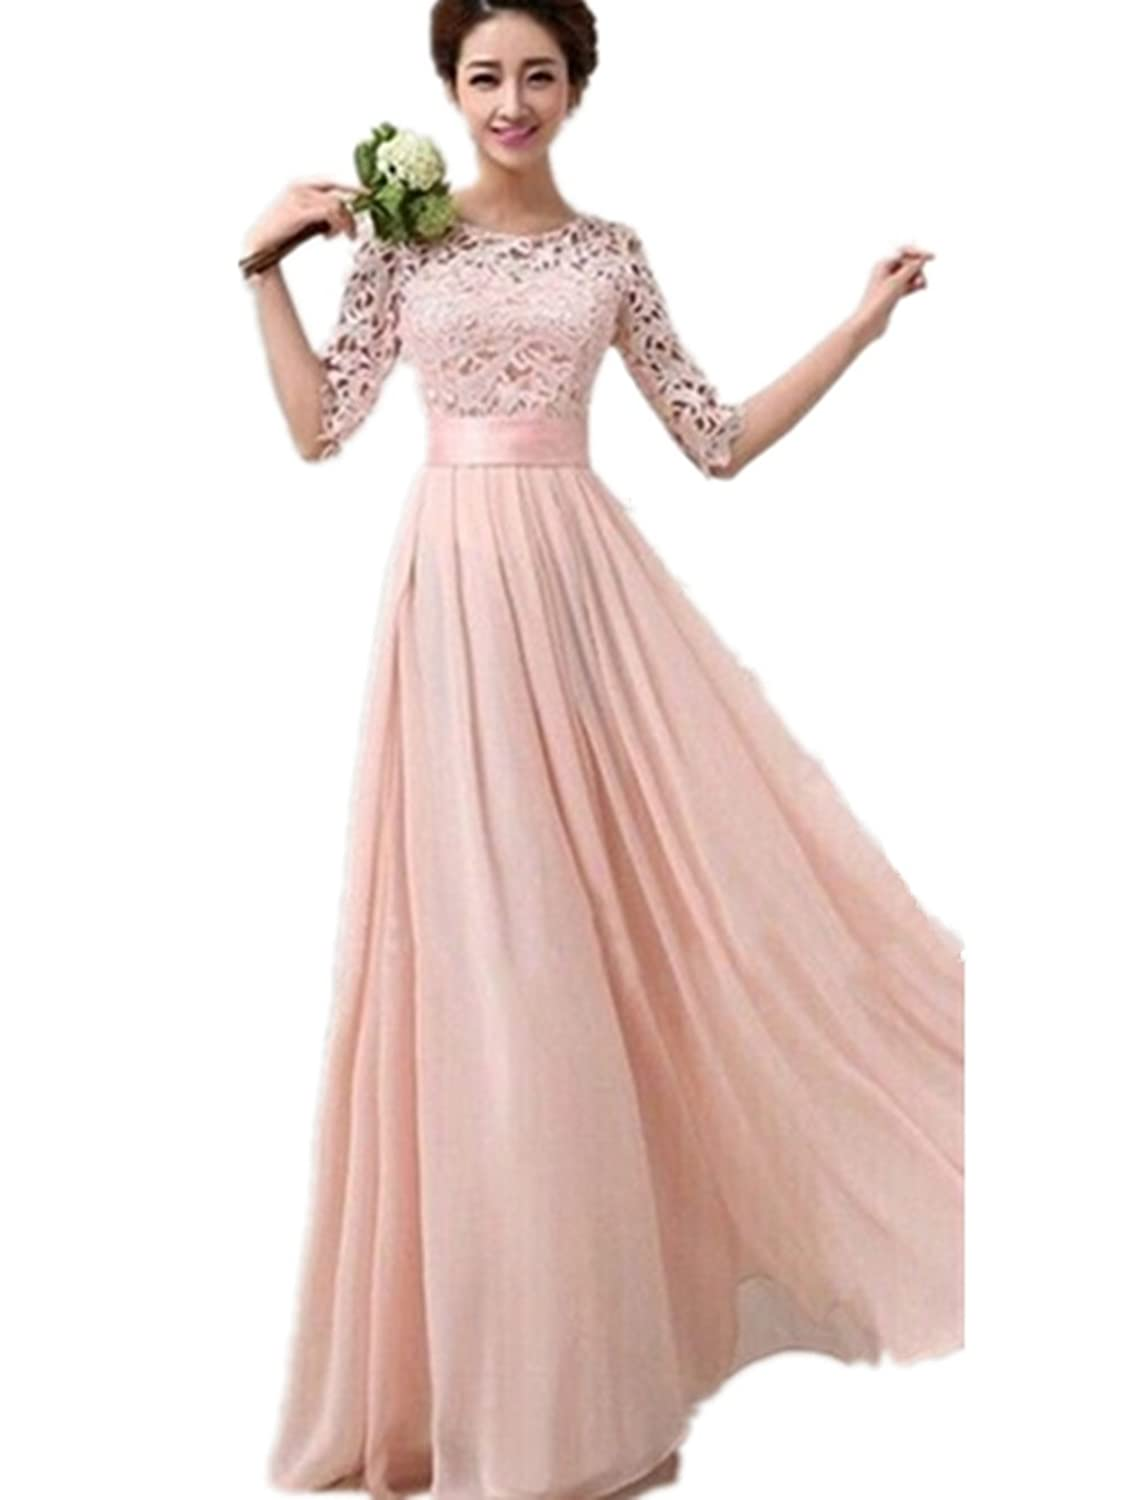 Pink Wedding Dresses - Lots of Wedding Ideas.com